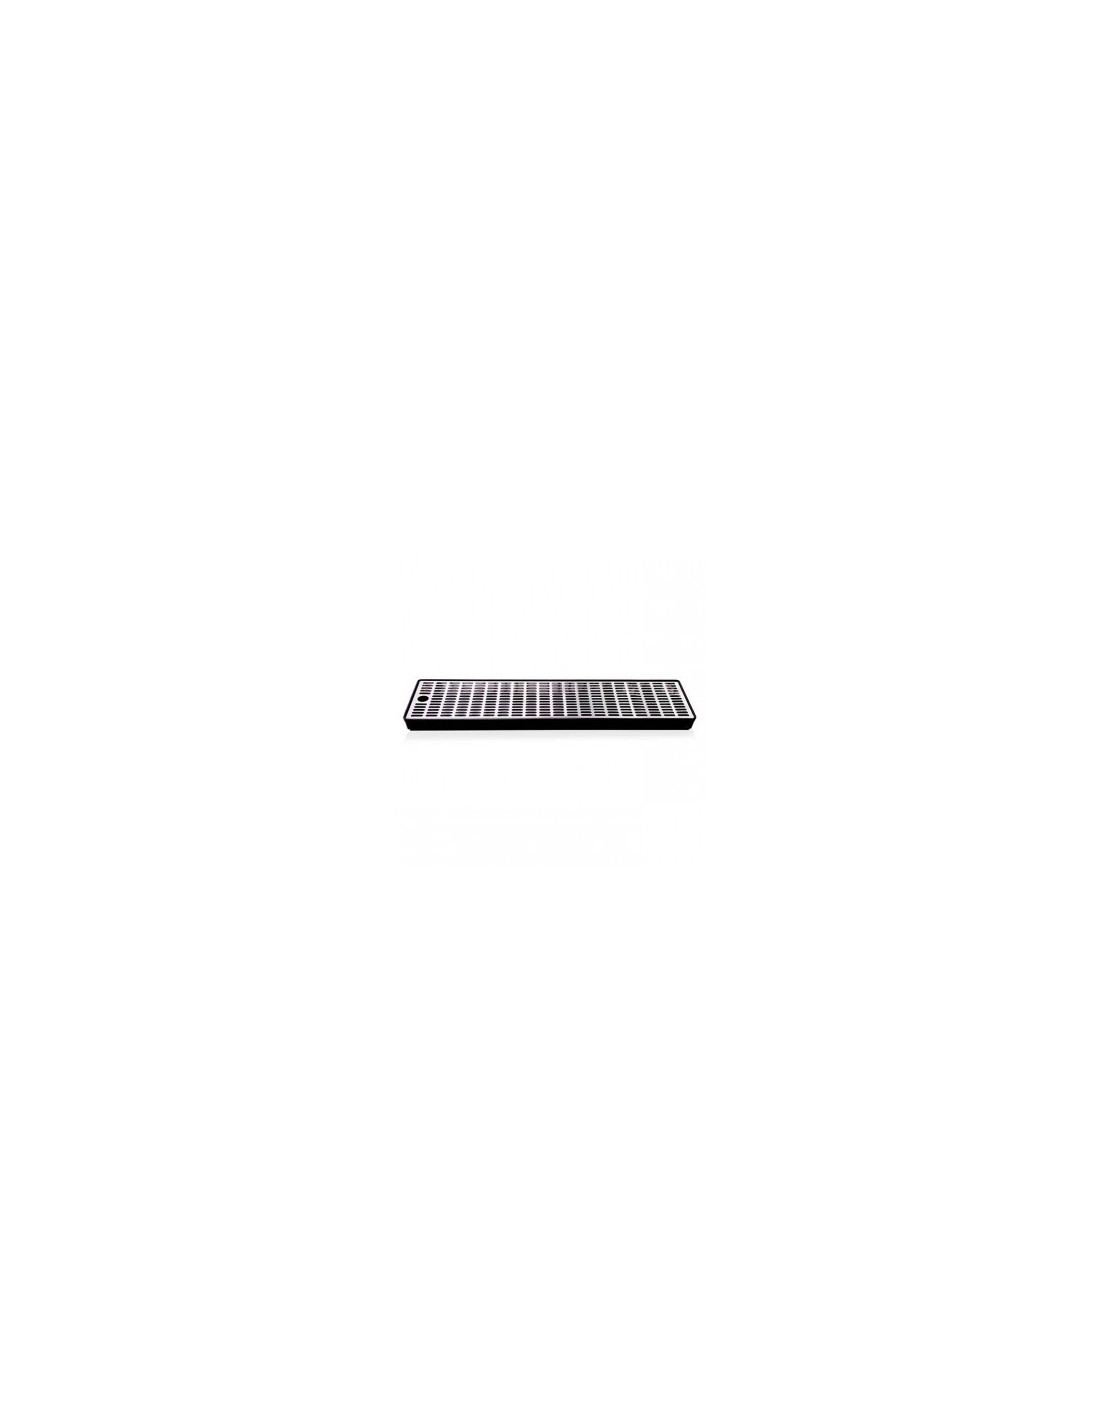 VYR02272 - Drip tray in plastic with grate in stainless steel 600x150x35 mm